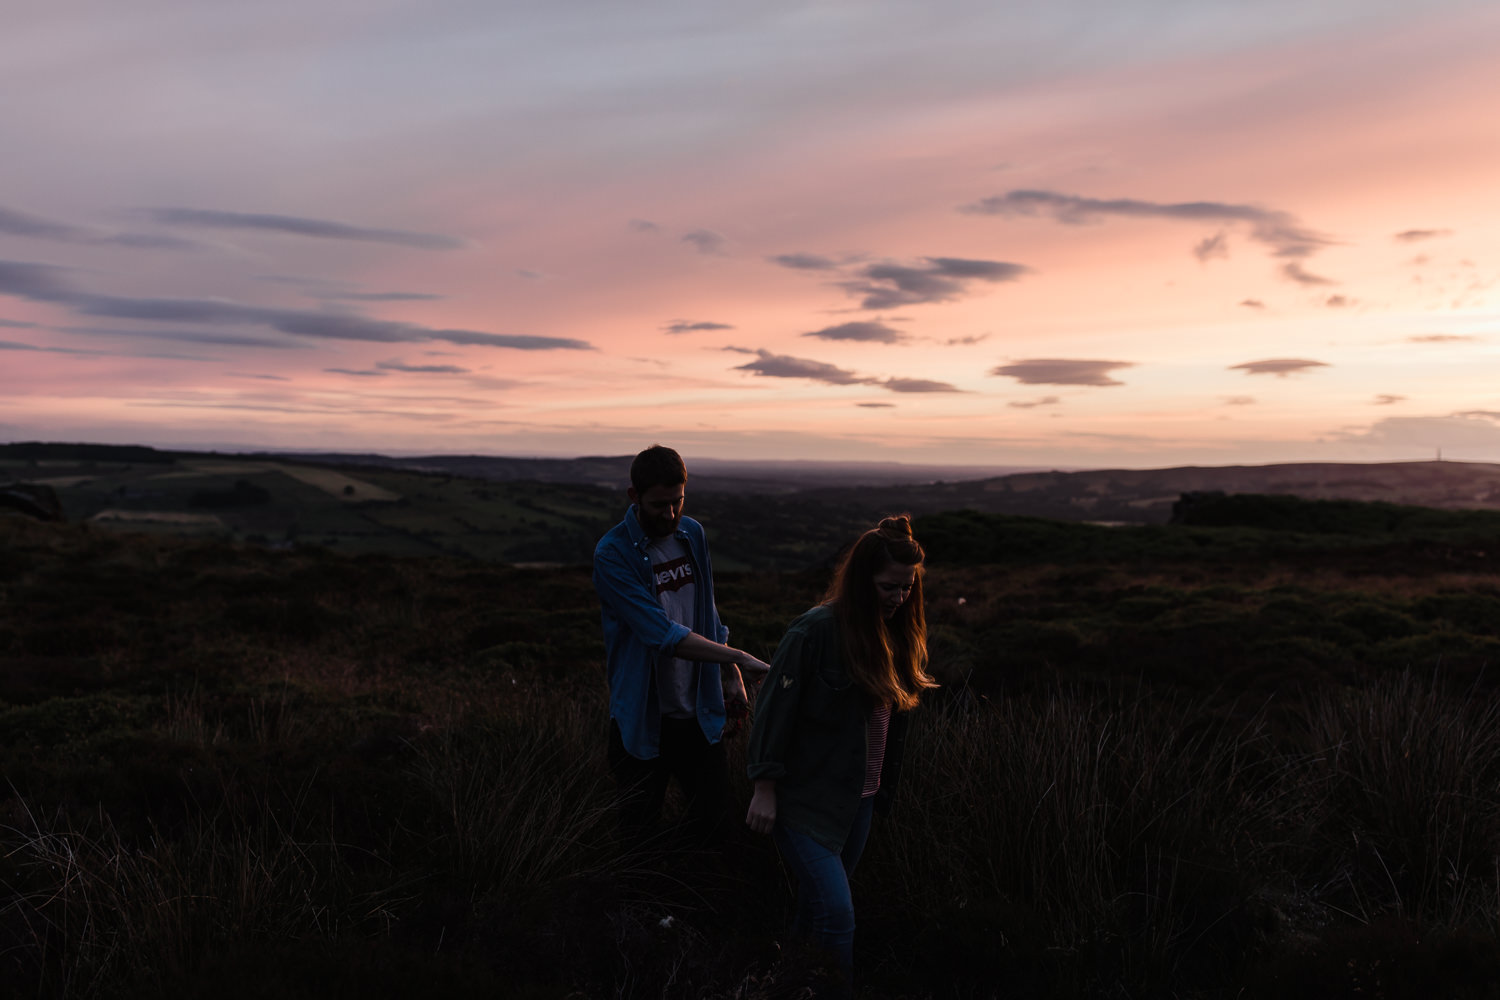 Peak_District_Engagement_Shoot_Prewed_Couple_Shoot_-186.jpg